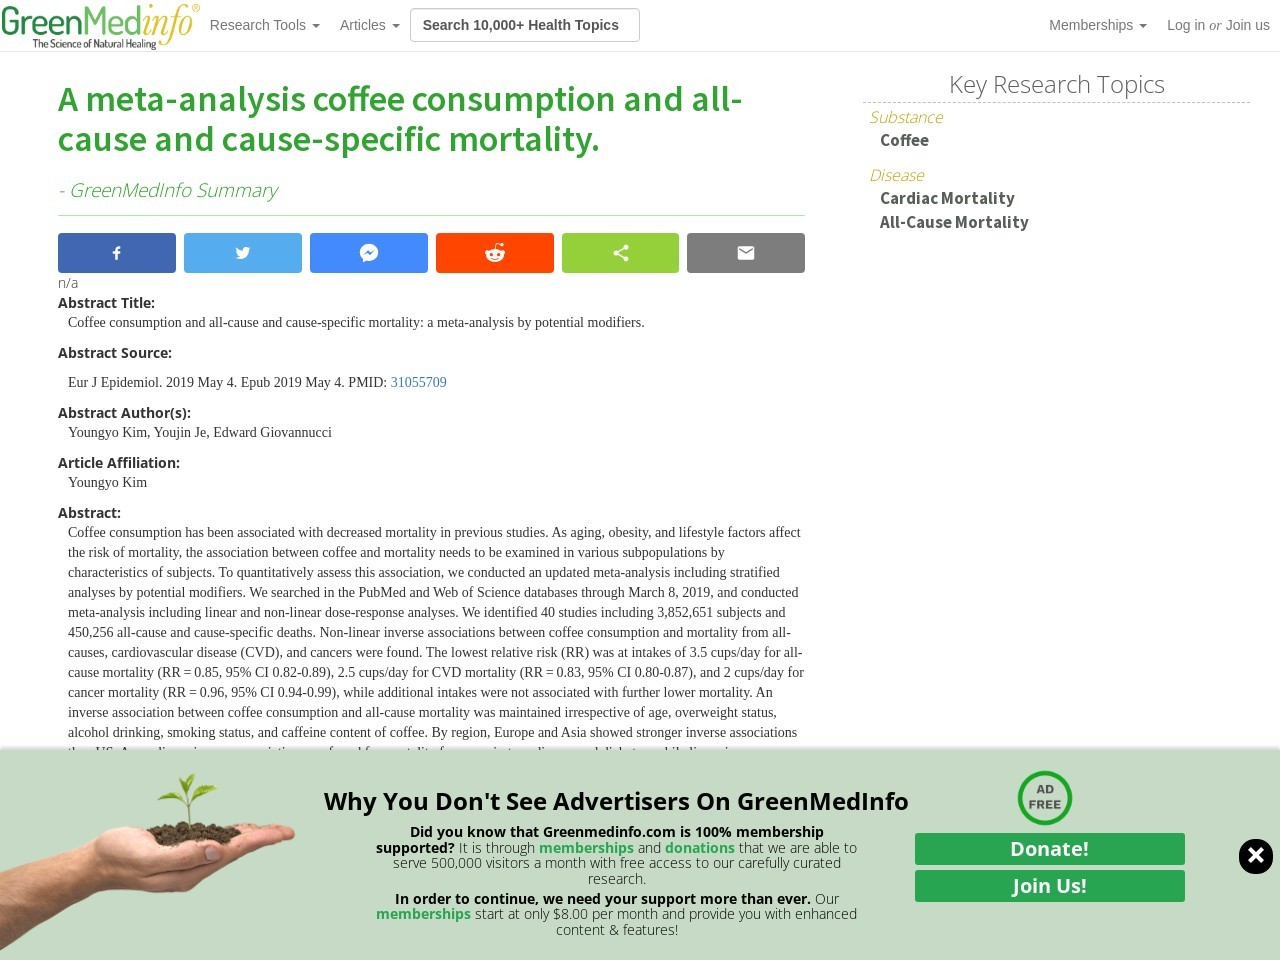 A meta-analysis coffee consumption and all-cause and cause-specific mortality.